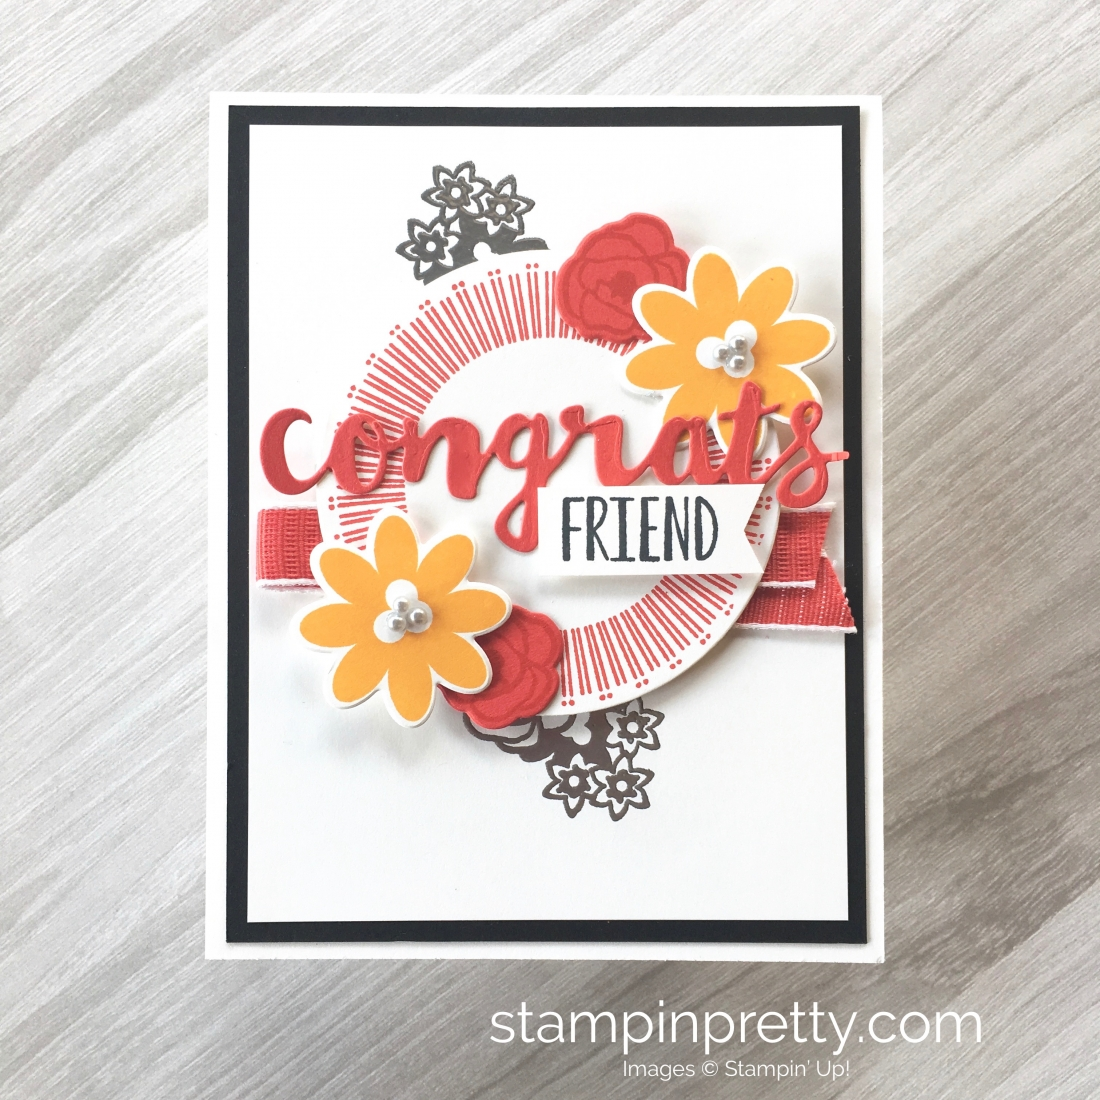 Create a simple congrats card using Stampin Up Bouquet Blooms stamp set & Gatefold Blossoms Dies - Mary Fish StampinUp Idea